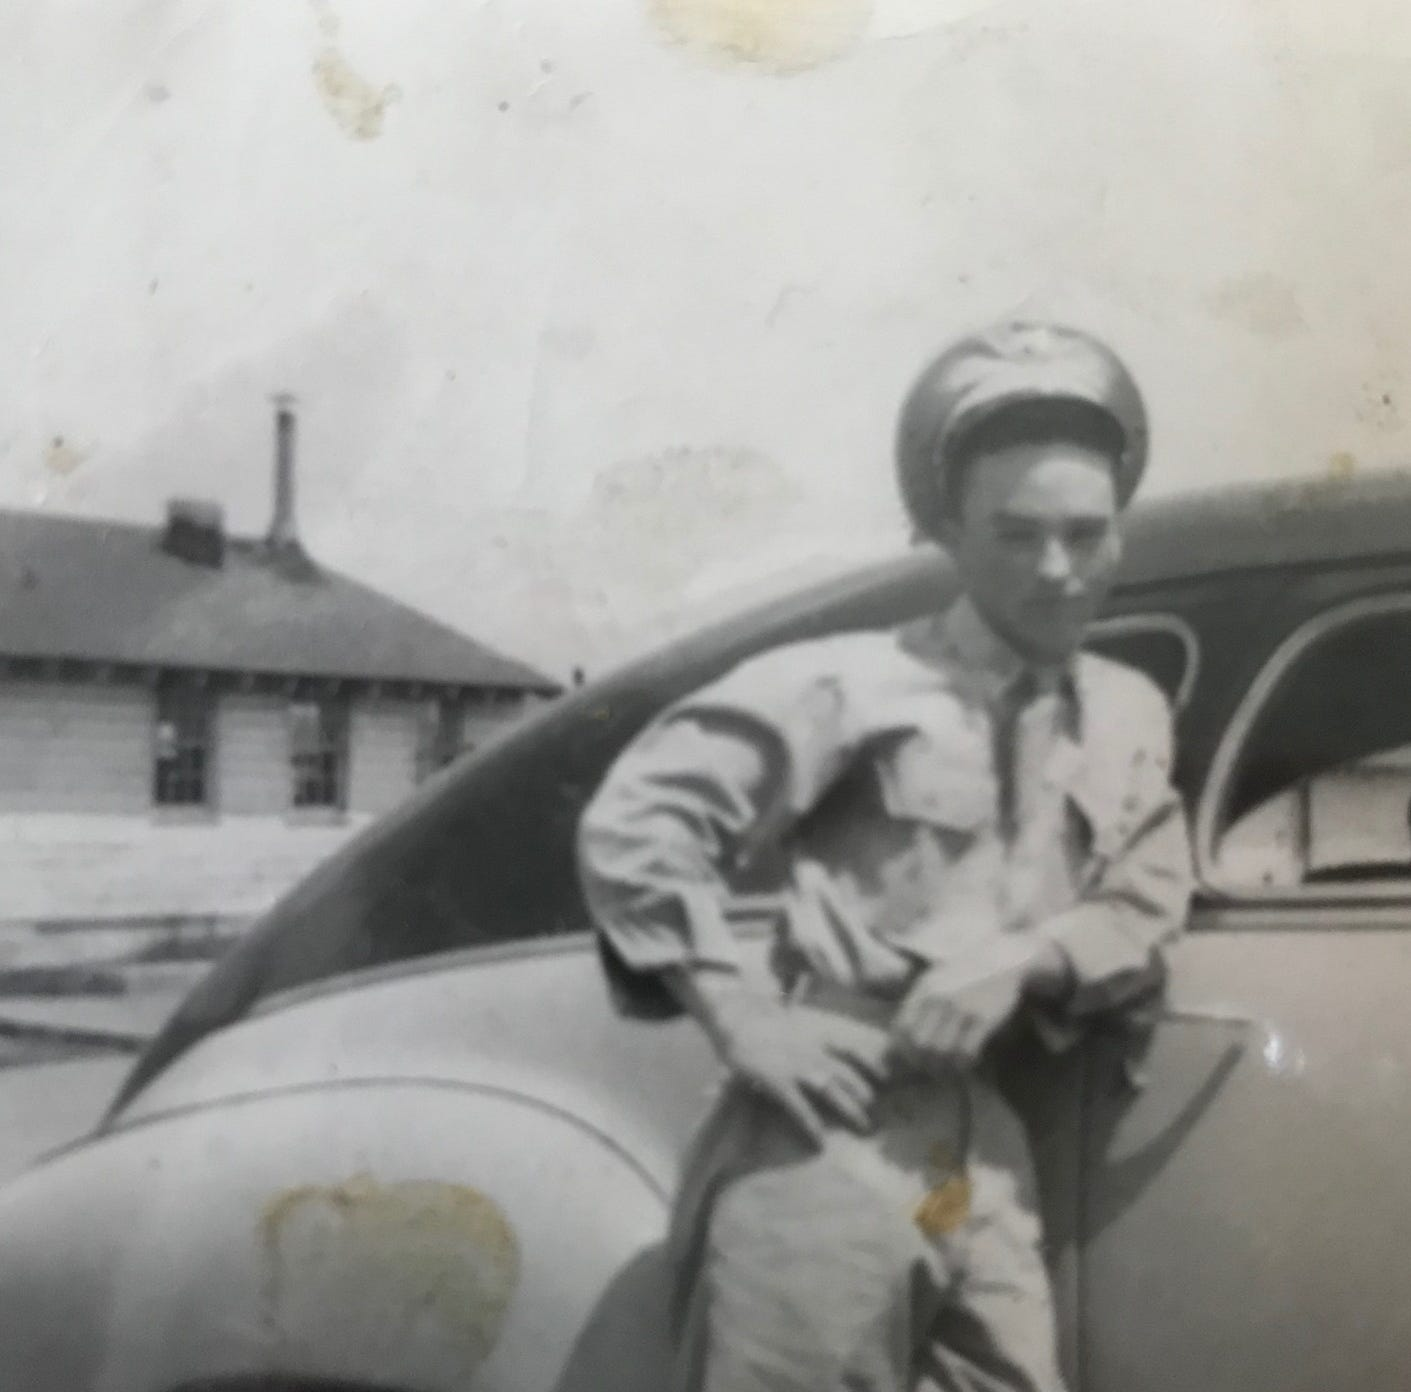 Remains of hero US Army veteran who died in Korean War finally coming home to Edison